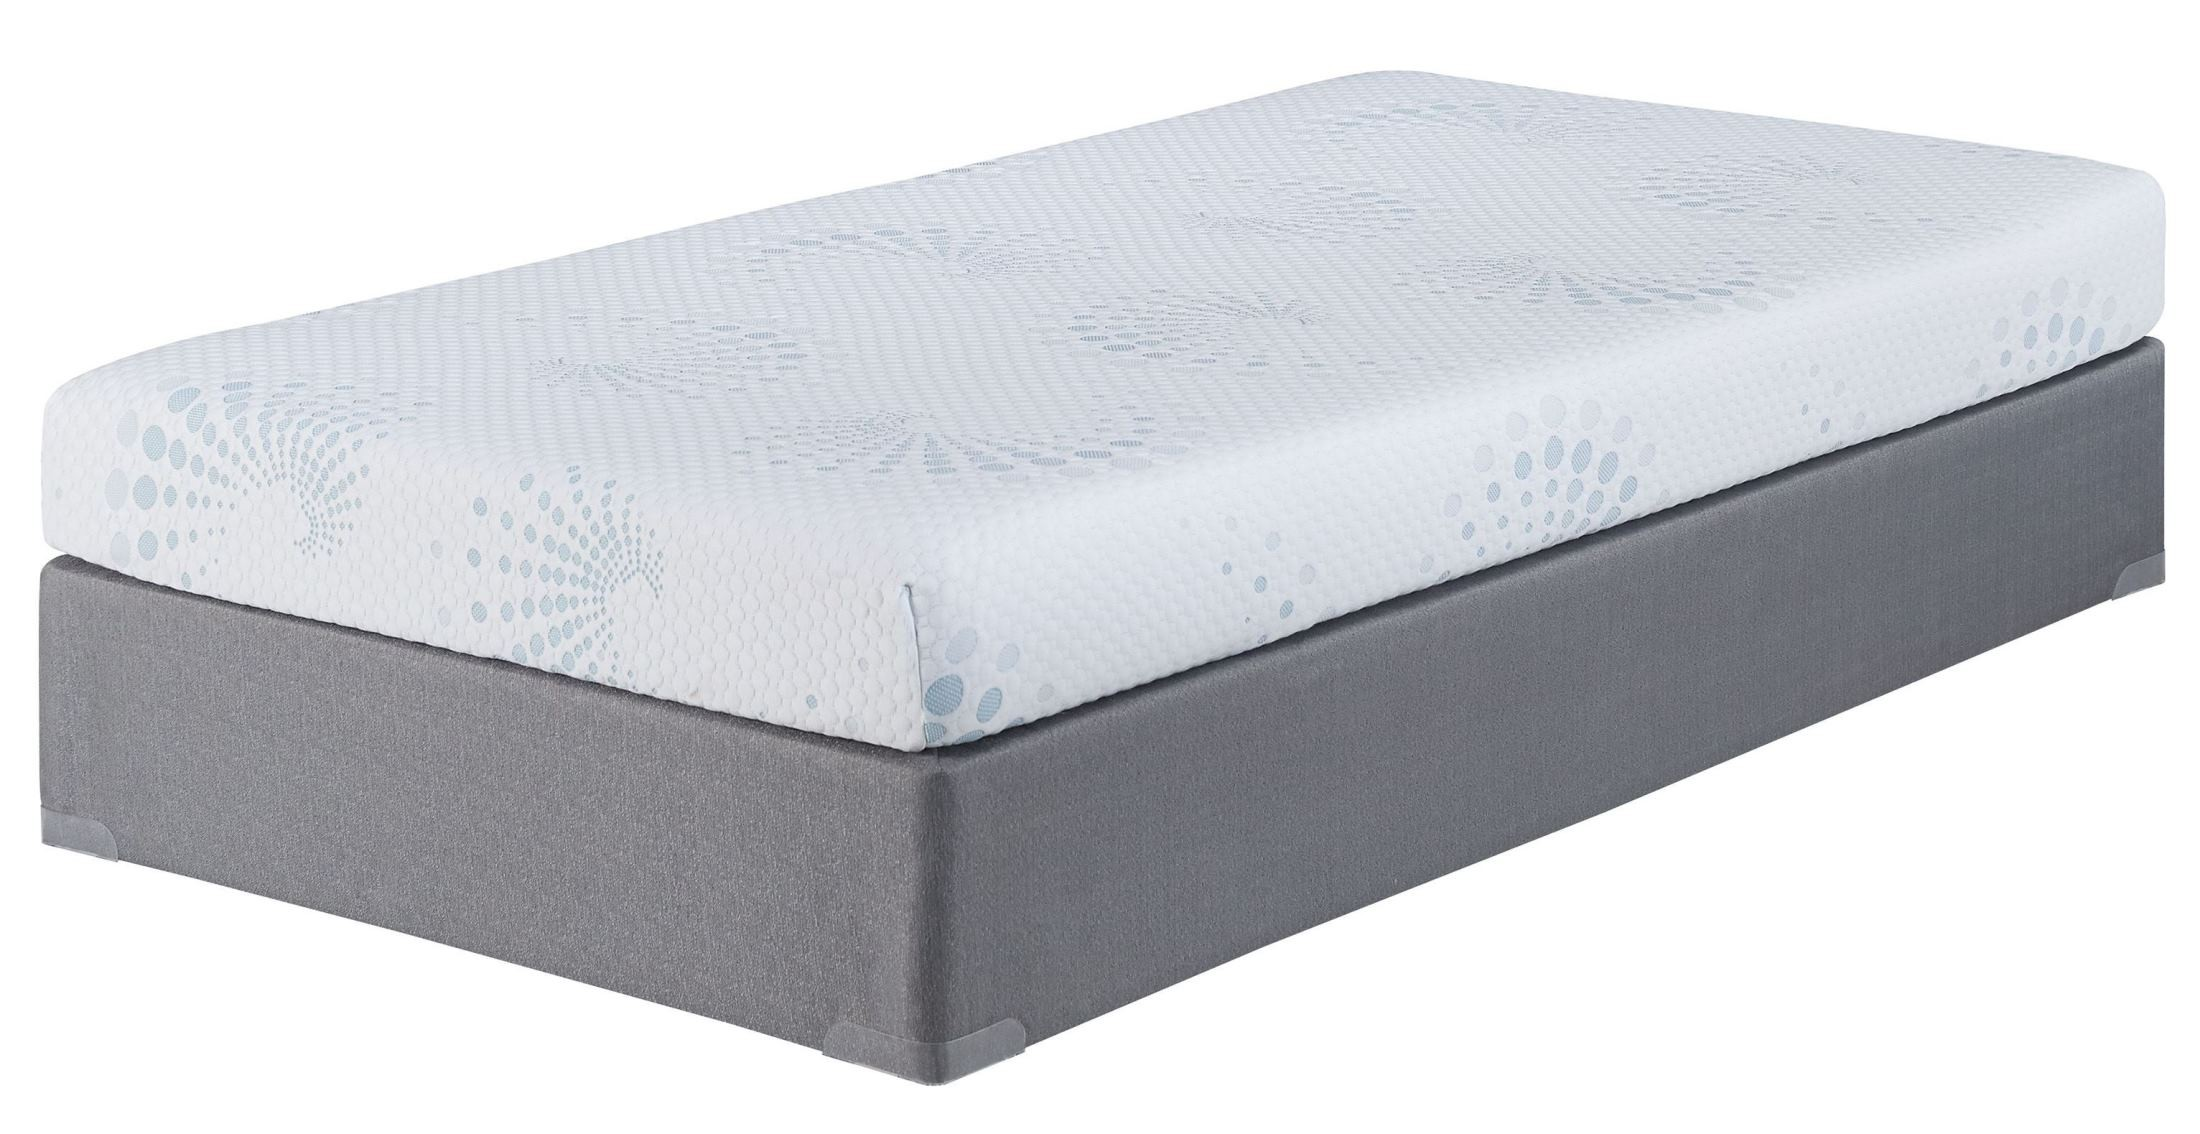 Kids Bedding Twin Memory Foam Mattress M80211 Ashley: double mattress memory foam